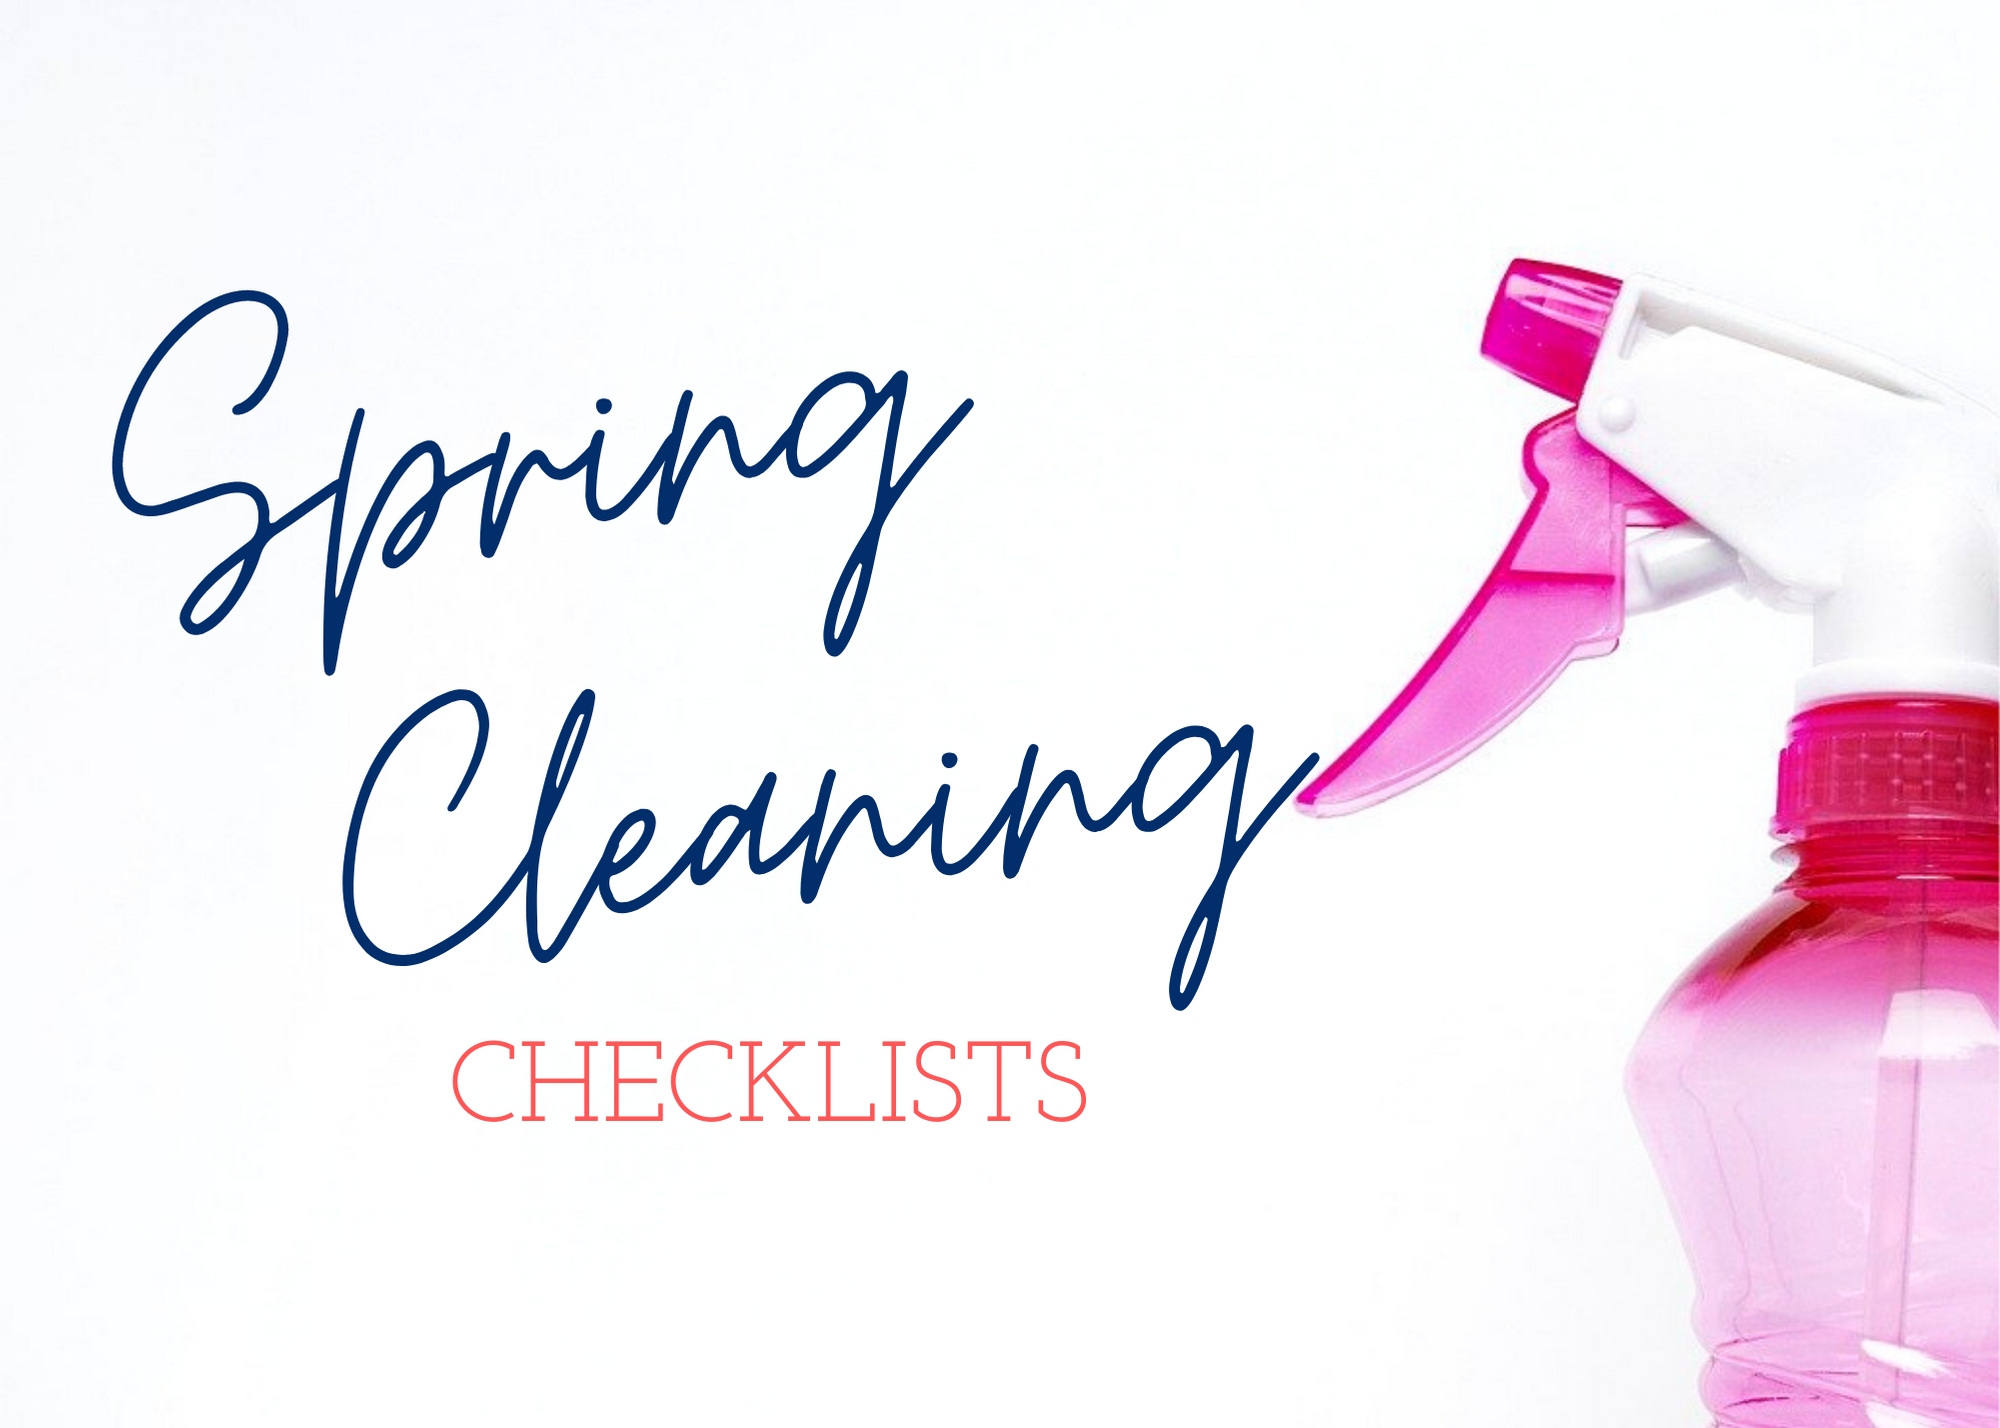 slifestyle, spring, cleaning checklists, how to spring clean, season cleaning, house cleaning, spring cleaning, window cleaning, cleaning service, spring break, checklists for cleaning, spring cleaning tips, clean by task, clean by room, refresh, home organization, how to, cleanout, wiping, new, getting things done, diy, do it yourself, housekeeping, know how, tips, notes, free printables, pdf format, printable checklist, home decor, nesting, clean, bedrooms, bathrooms, kitchen, dining, living room, play room, garage, windows, baseboards, fans, flooring, closets, furniture, out with the old, in with the new